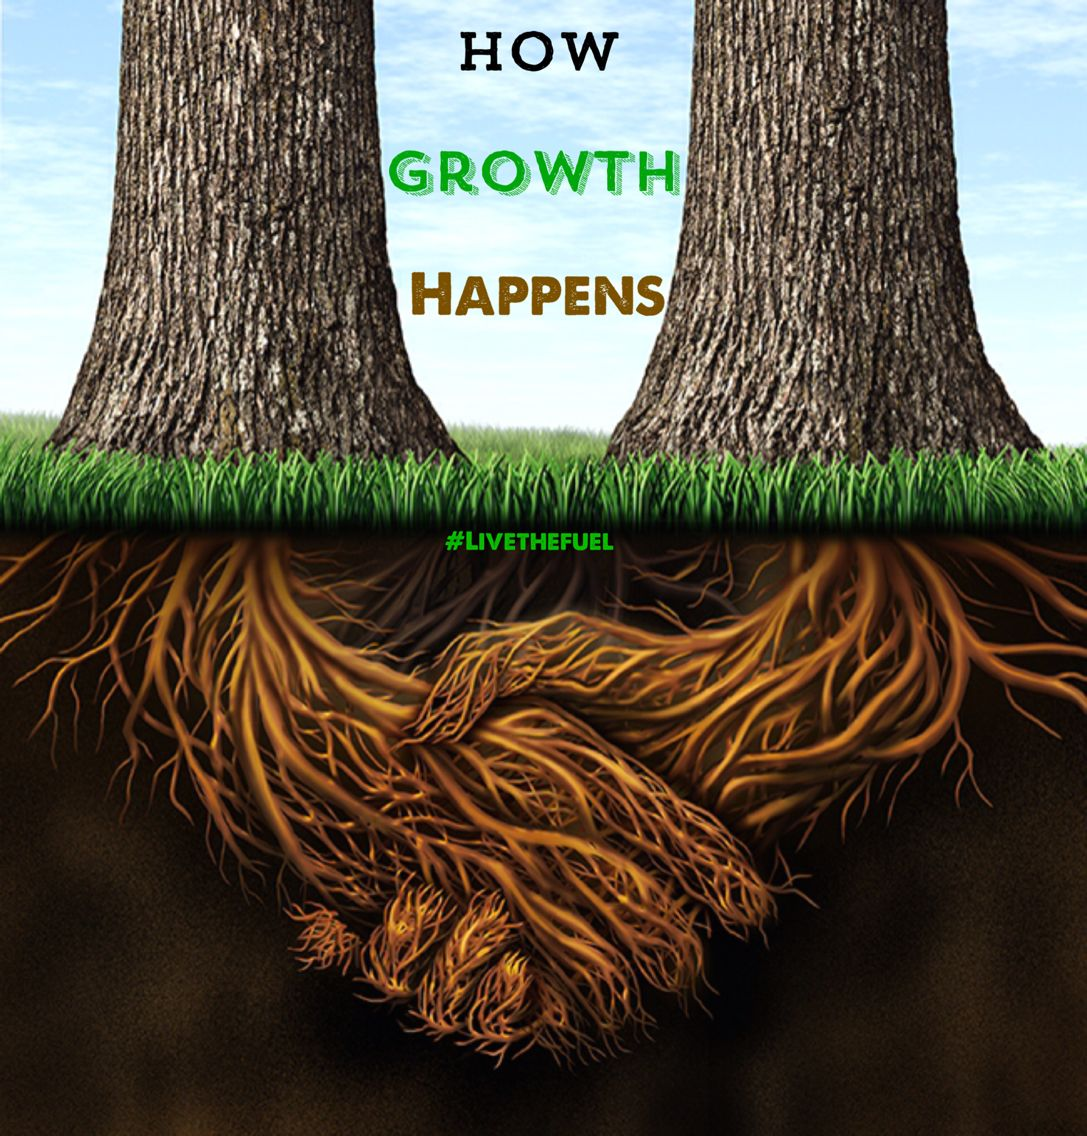 How growth happens.